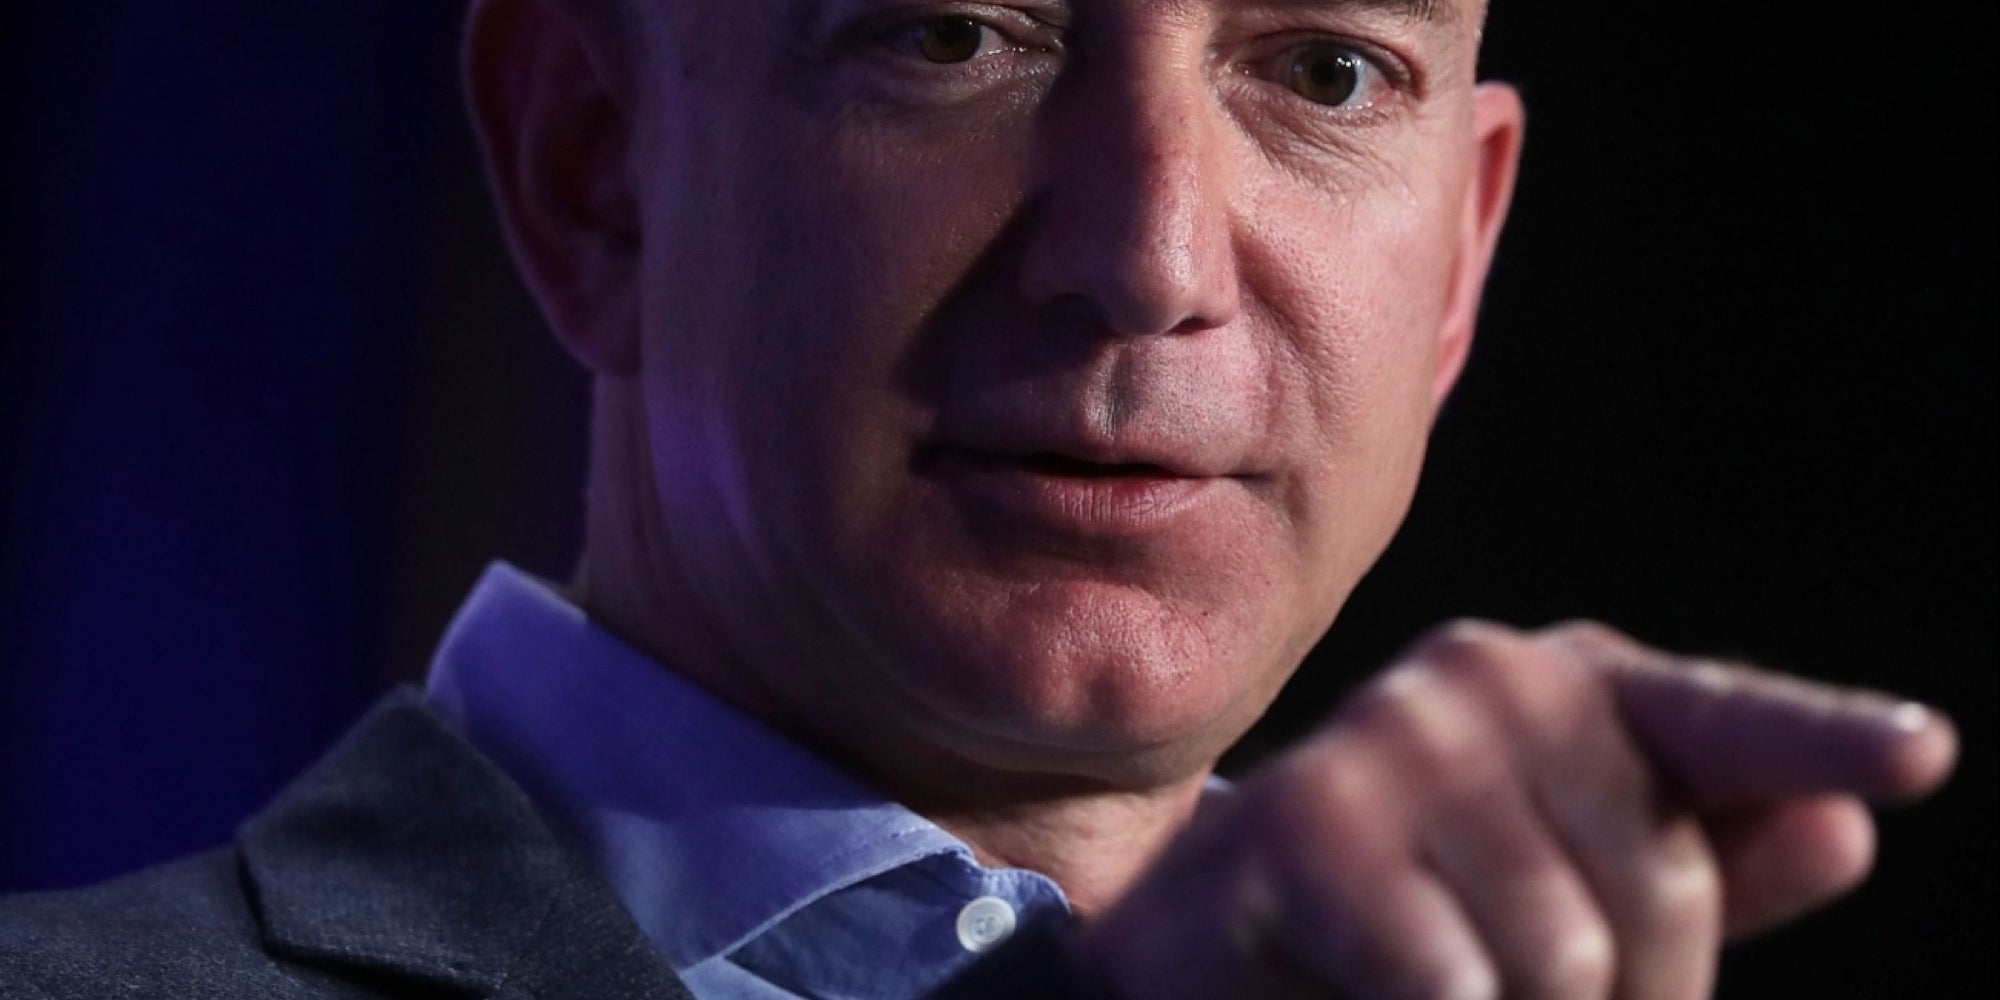 4 Success Habits You Can Learn From Jeff Bezos, the World's Fourth Richest Person